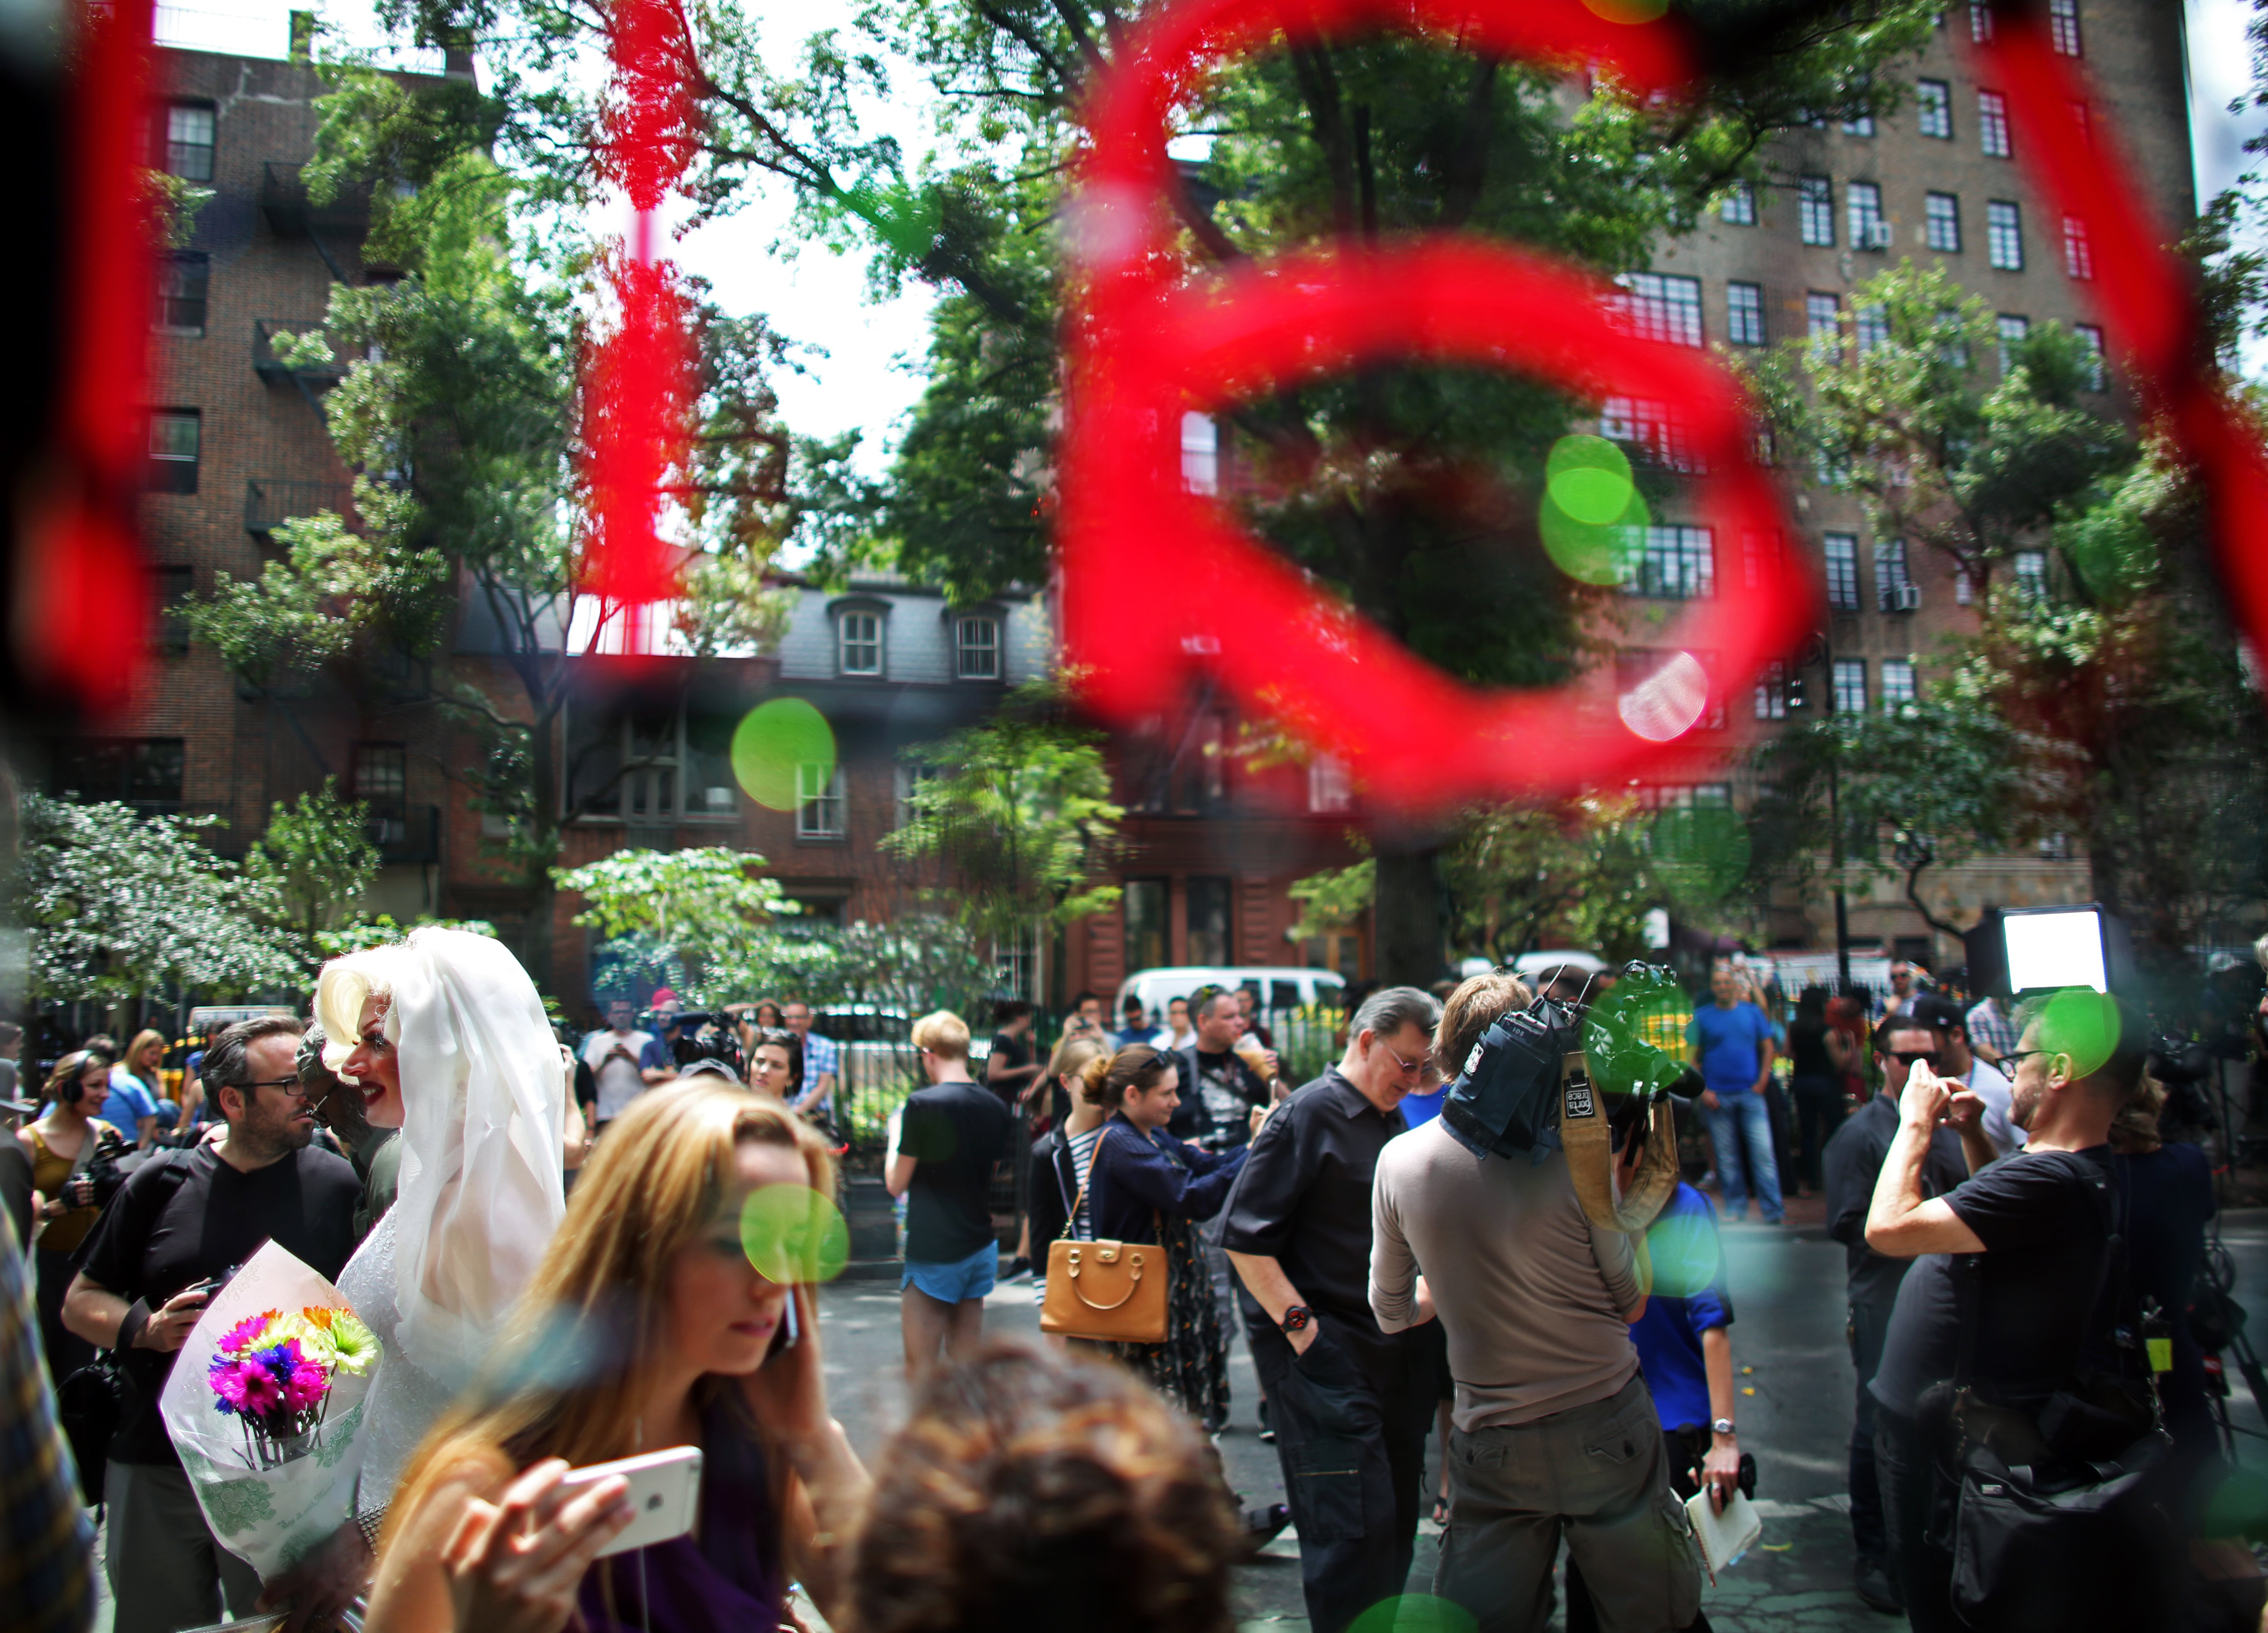 Carlotta Gurl (in wedding dress, left,) a gay rights activist from Vancouver, Canada, celebrates outside of the Stonewall Inn, an iconic gay bar recently granted historic landmark status, on June 26, 2015 in the West Village neighborhood in New York City.